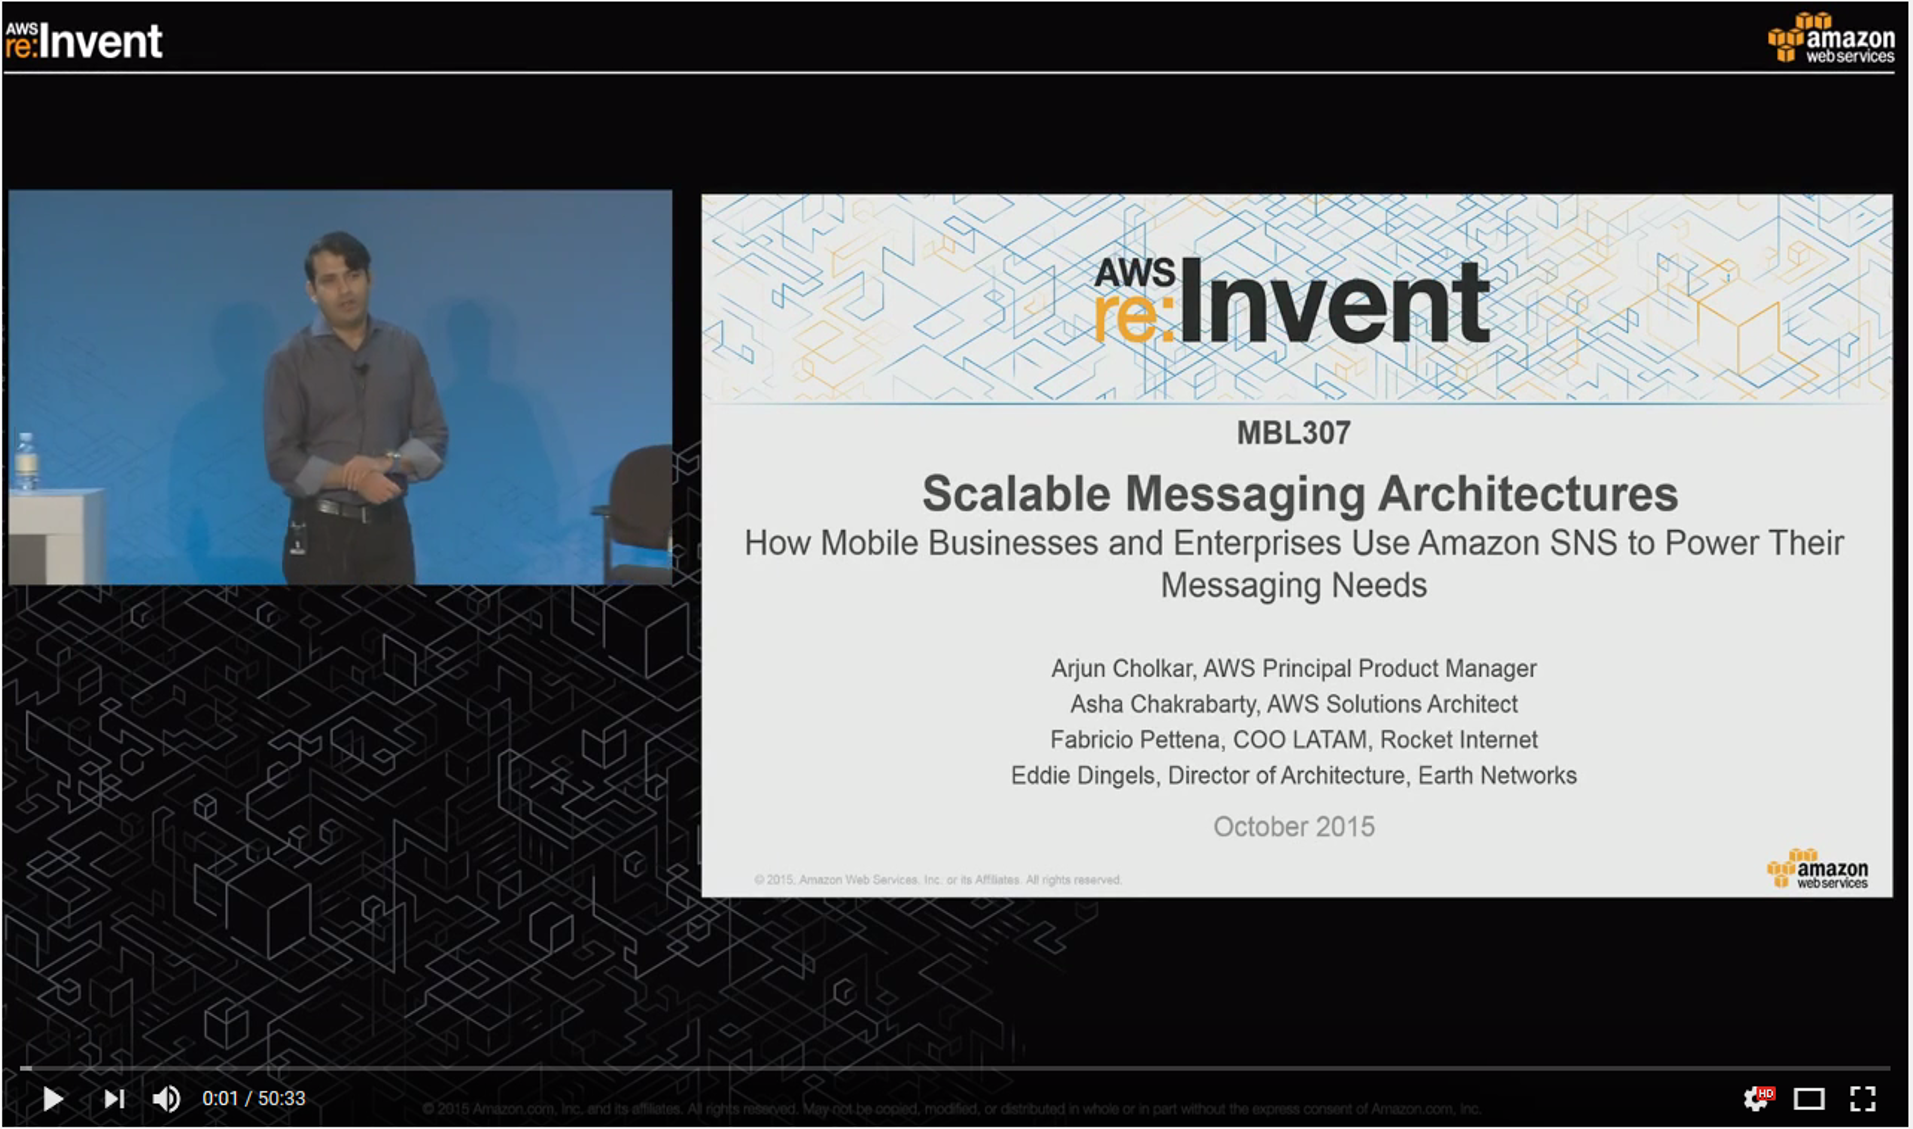 reInvent2015_MBL307_Scalable_Messaging_Architectures